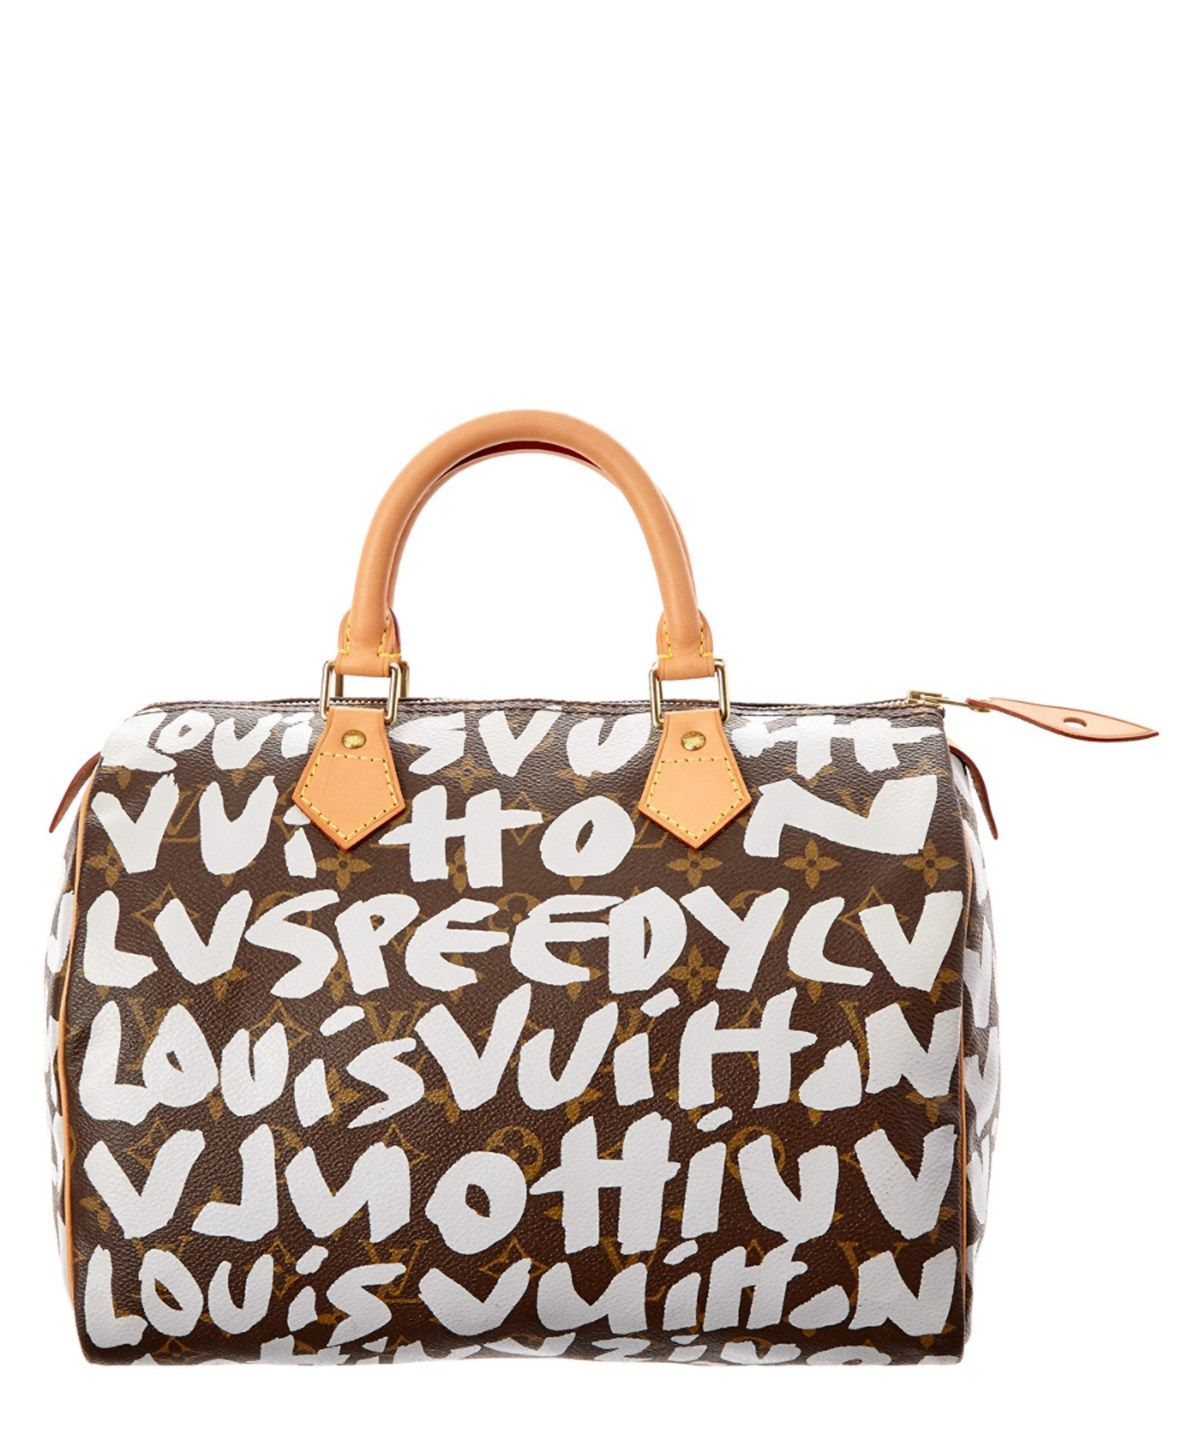 efb58d11f584 LOUIS VUITTON LOUIS VUITTON LIMITED EDITION STEPHEN SPROUSE GRAFFITI MONOGRAM  CANVAS SPEEDY 30 .  louisvuitton  bags  shoulder bags  lining  canvas